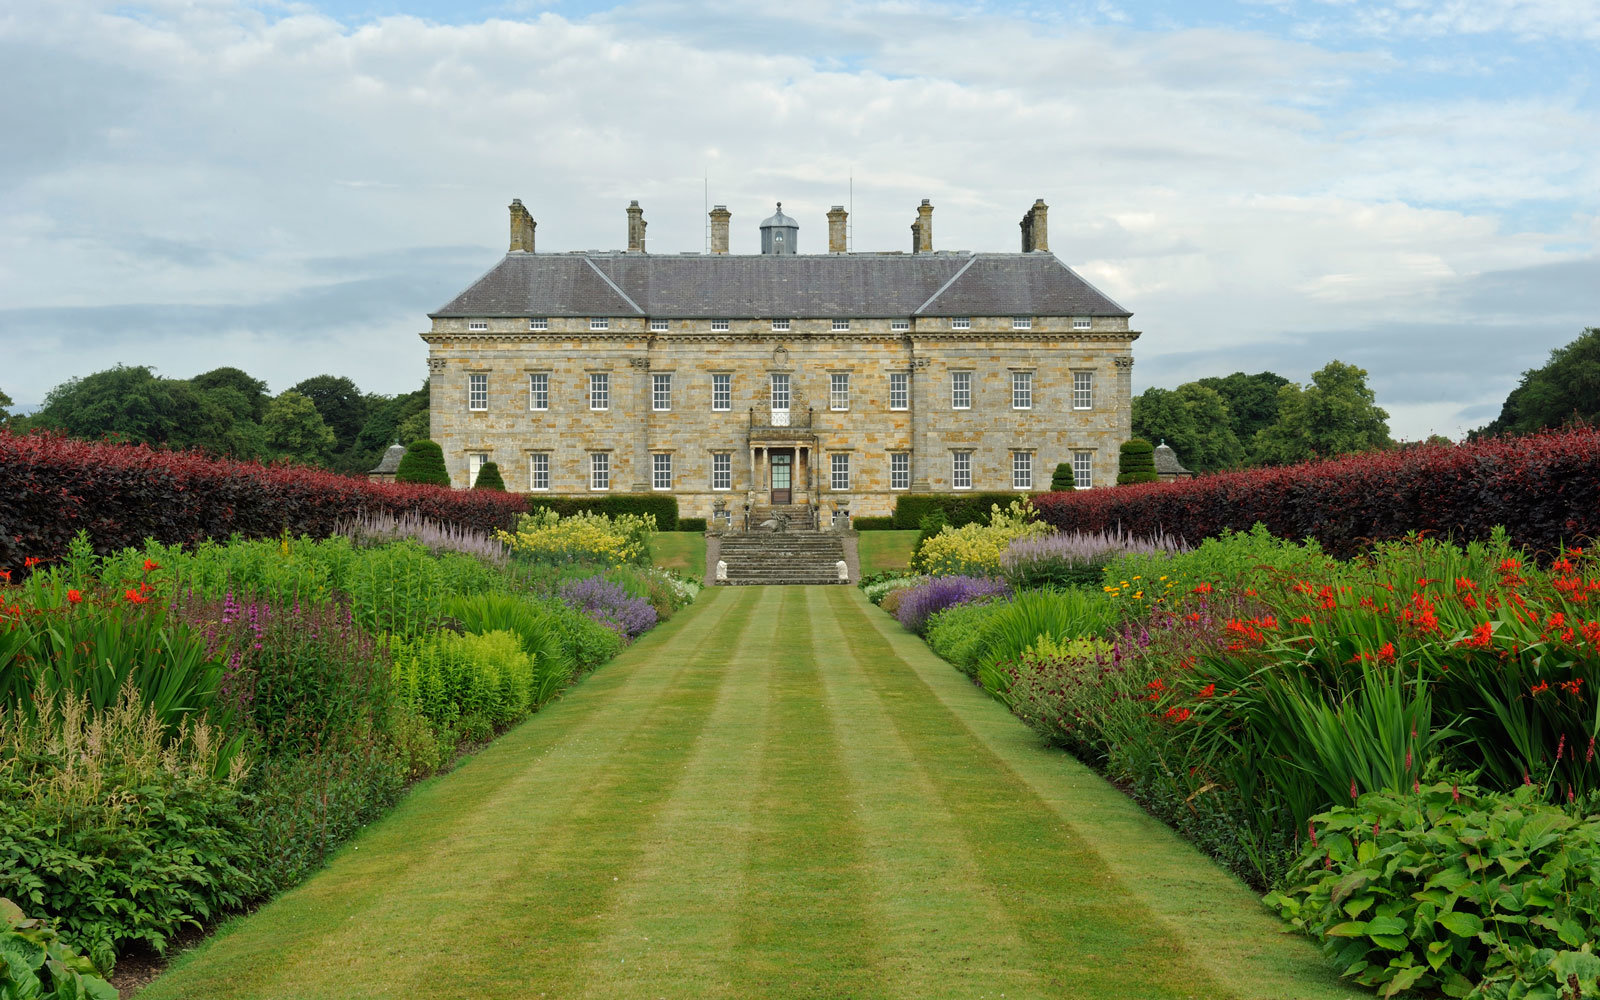 Kinross House gardens in Scotland